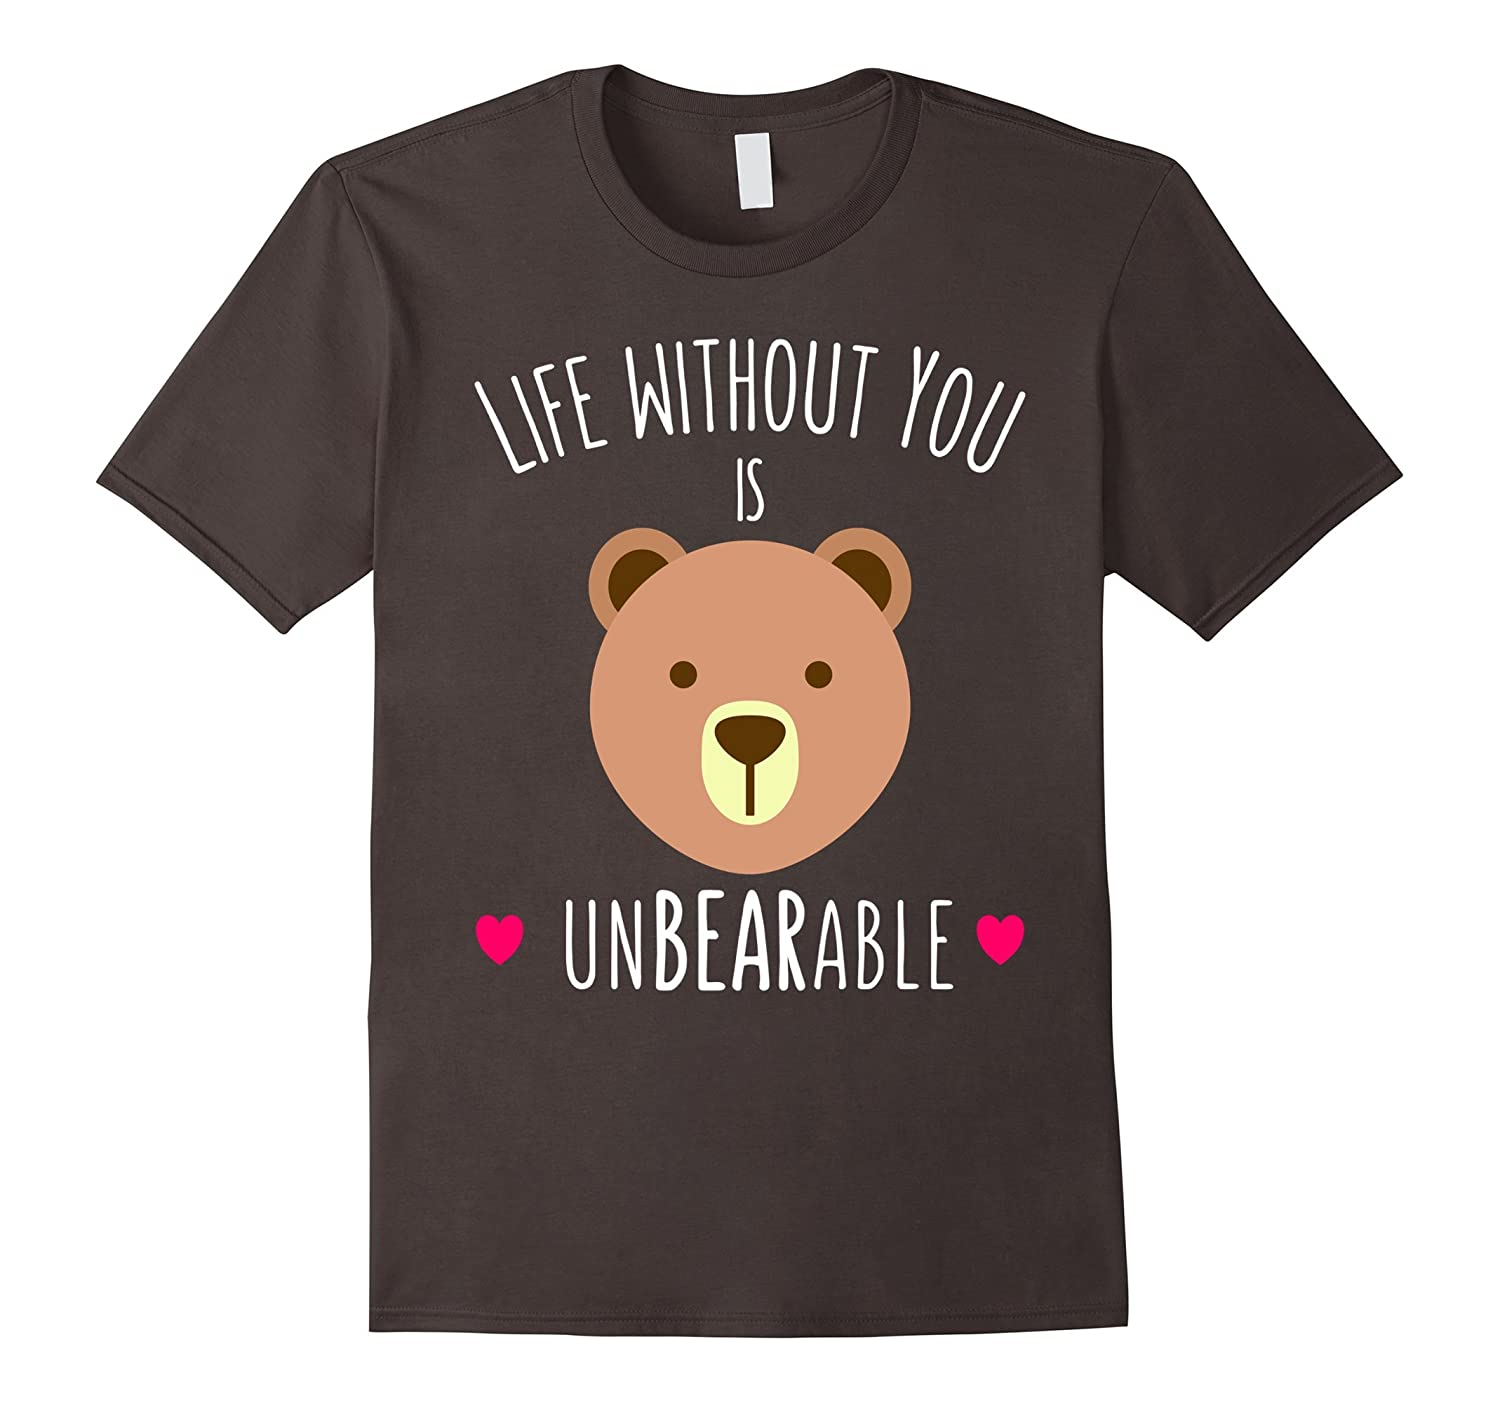 Funny Valentines Day Gifts For Her Him Unbearable Shirts Cl Colamaga